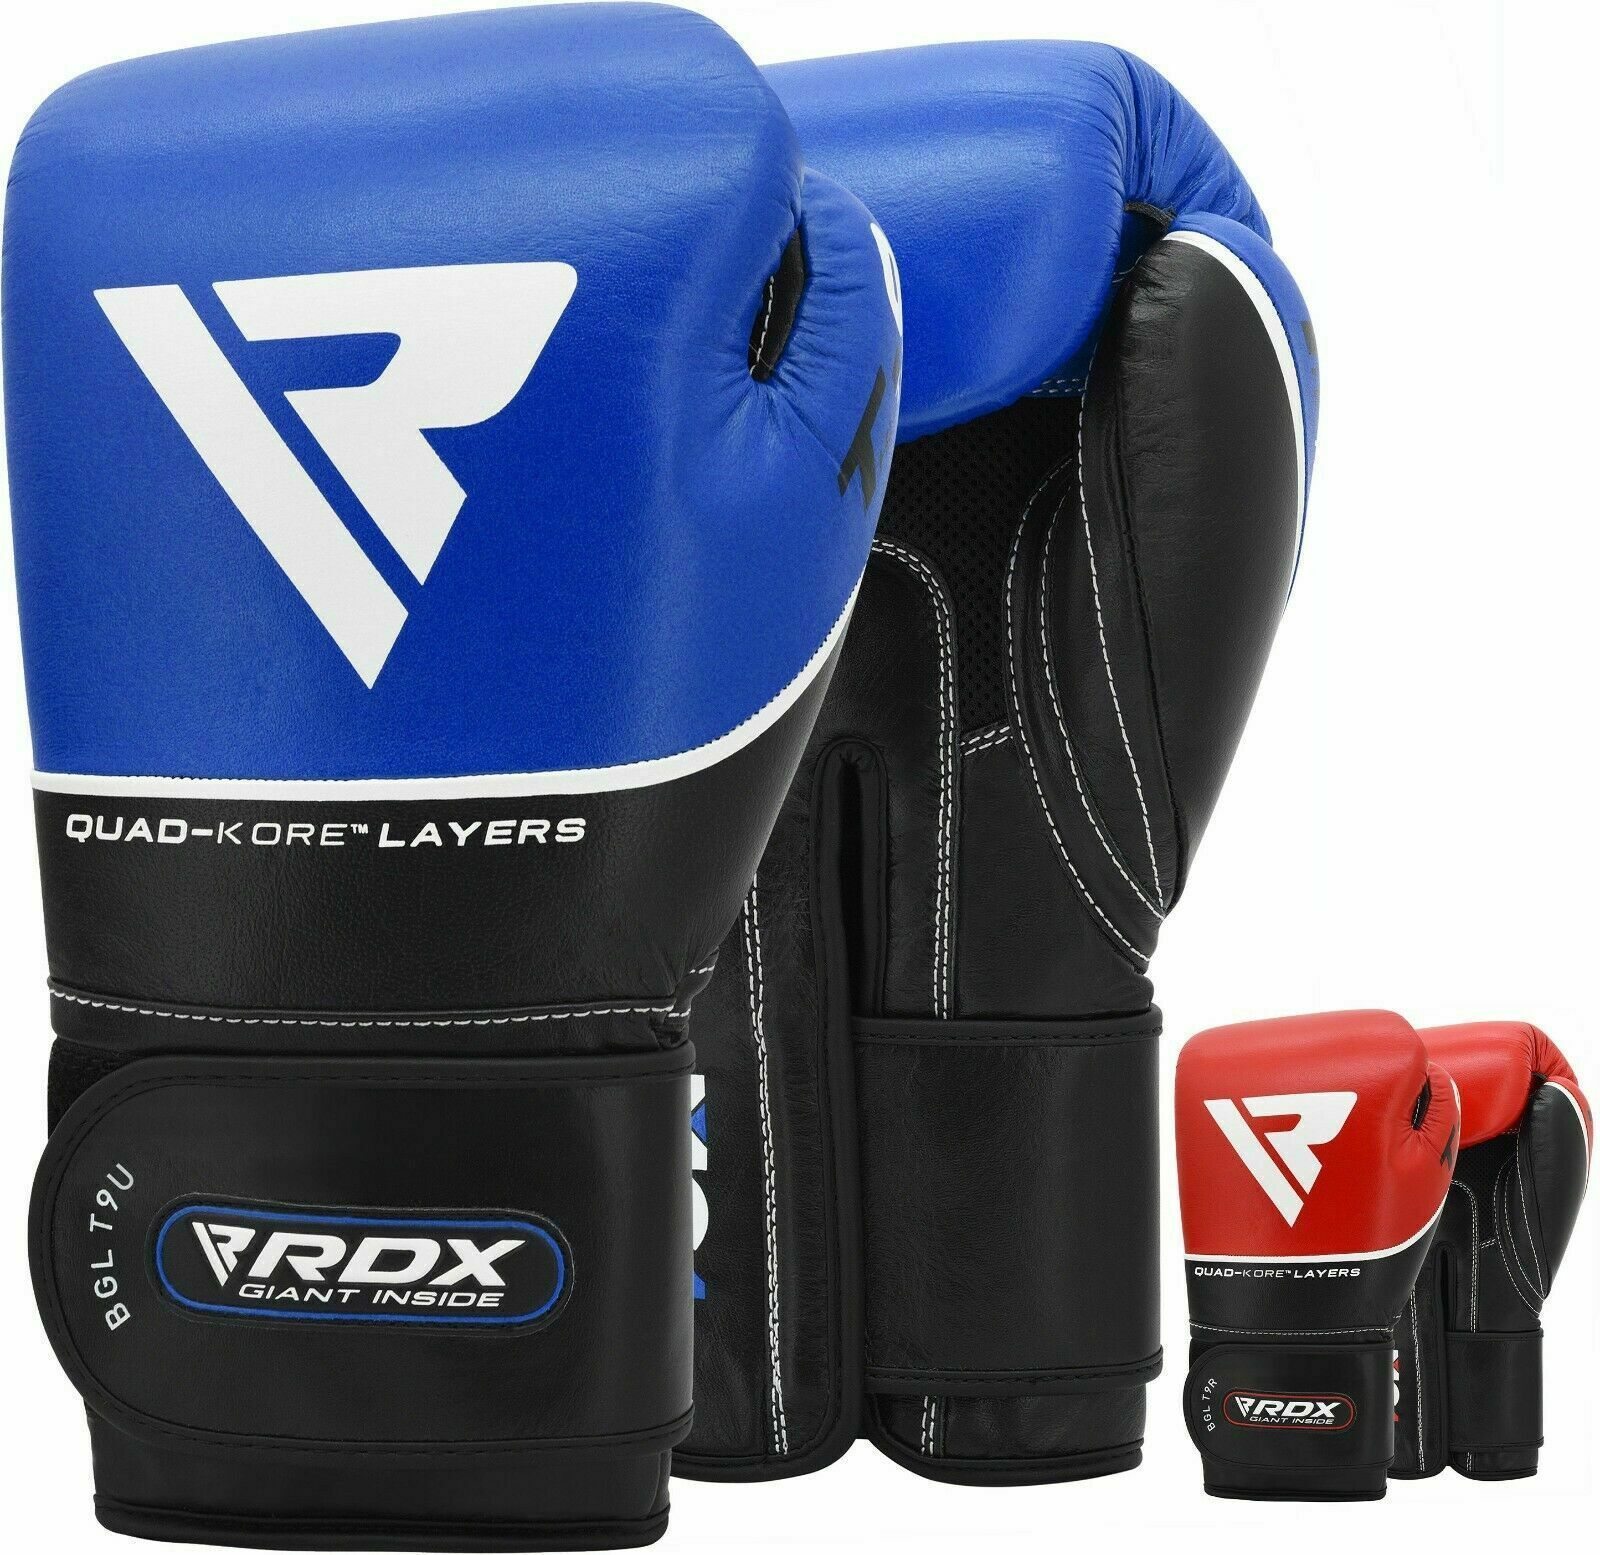 Leather Boxing Gloves MMA Training Sparring Punch Bag MuayThai Kickboxing